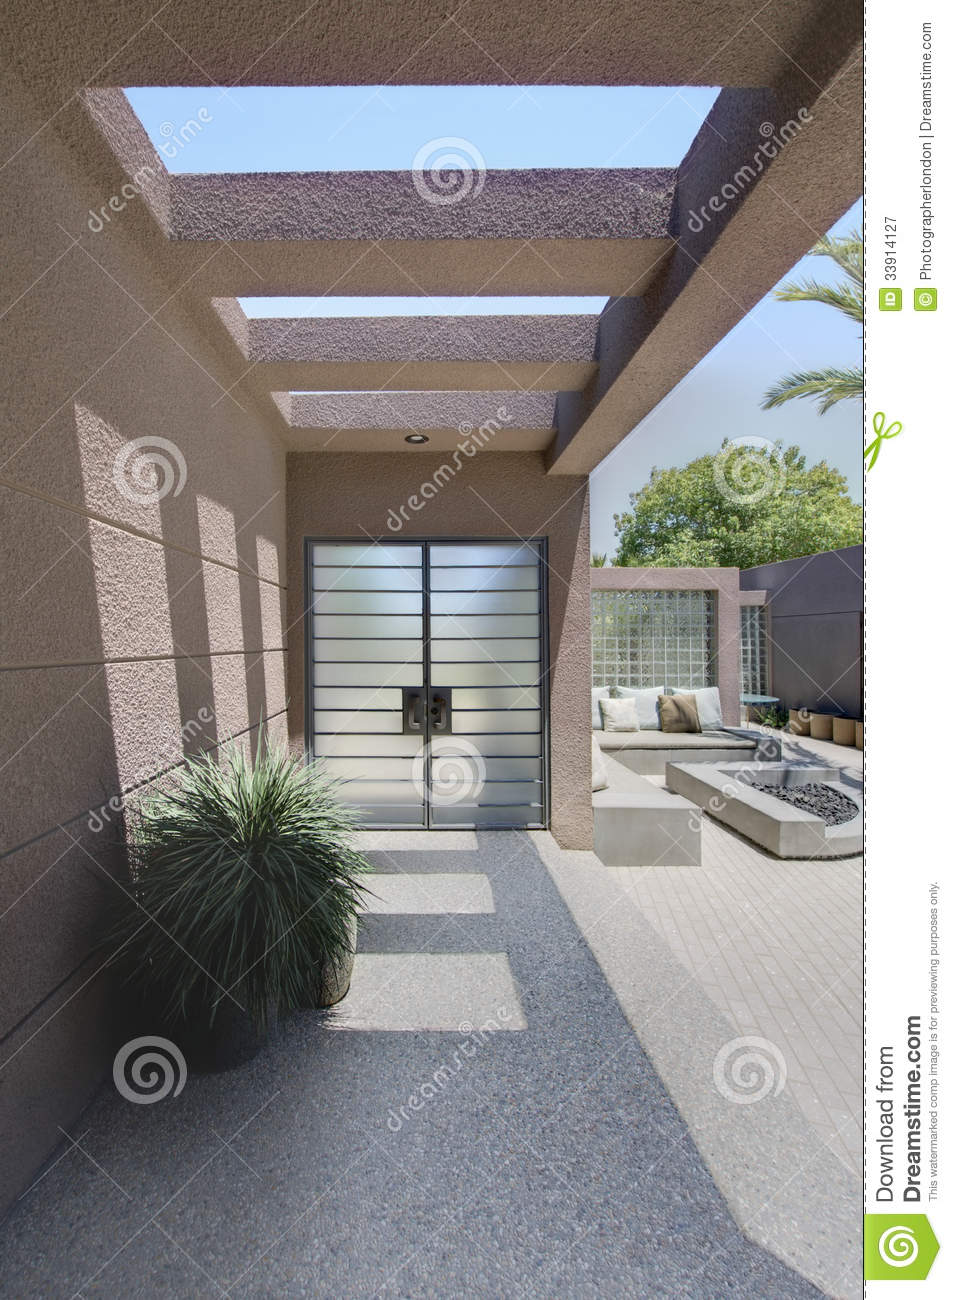 Front entrance with veranda of huis stock afbeelding afbeelding 33914127 - Huis veranda ...